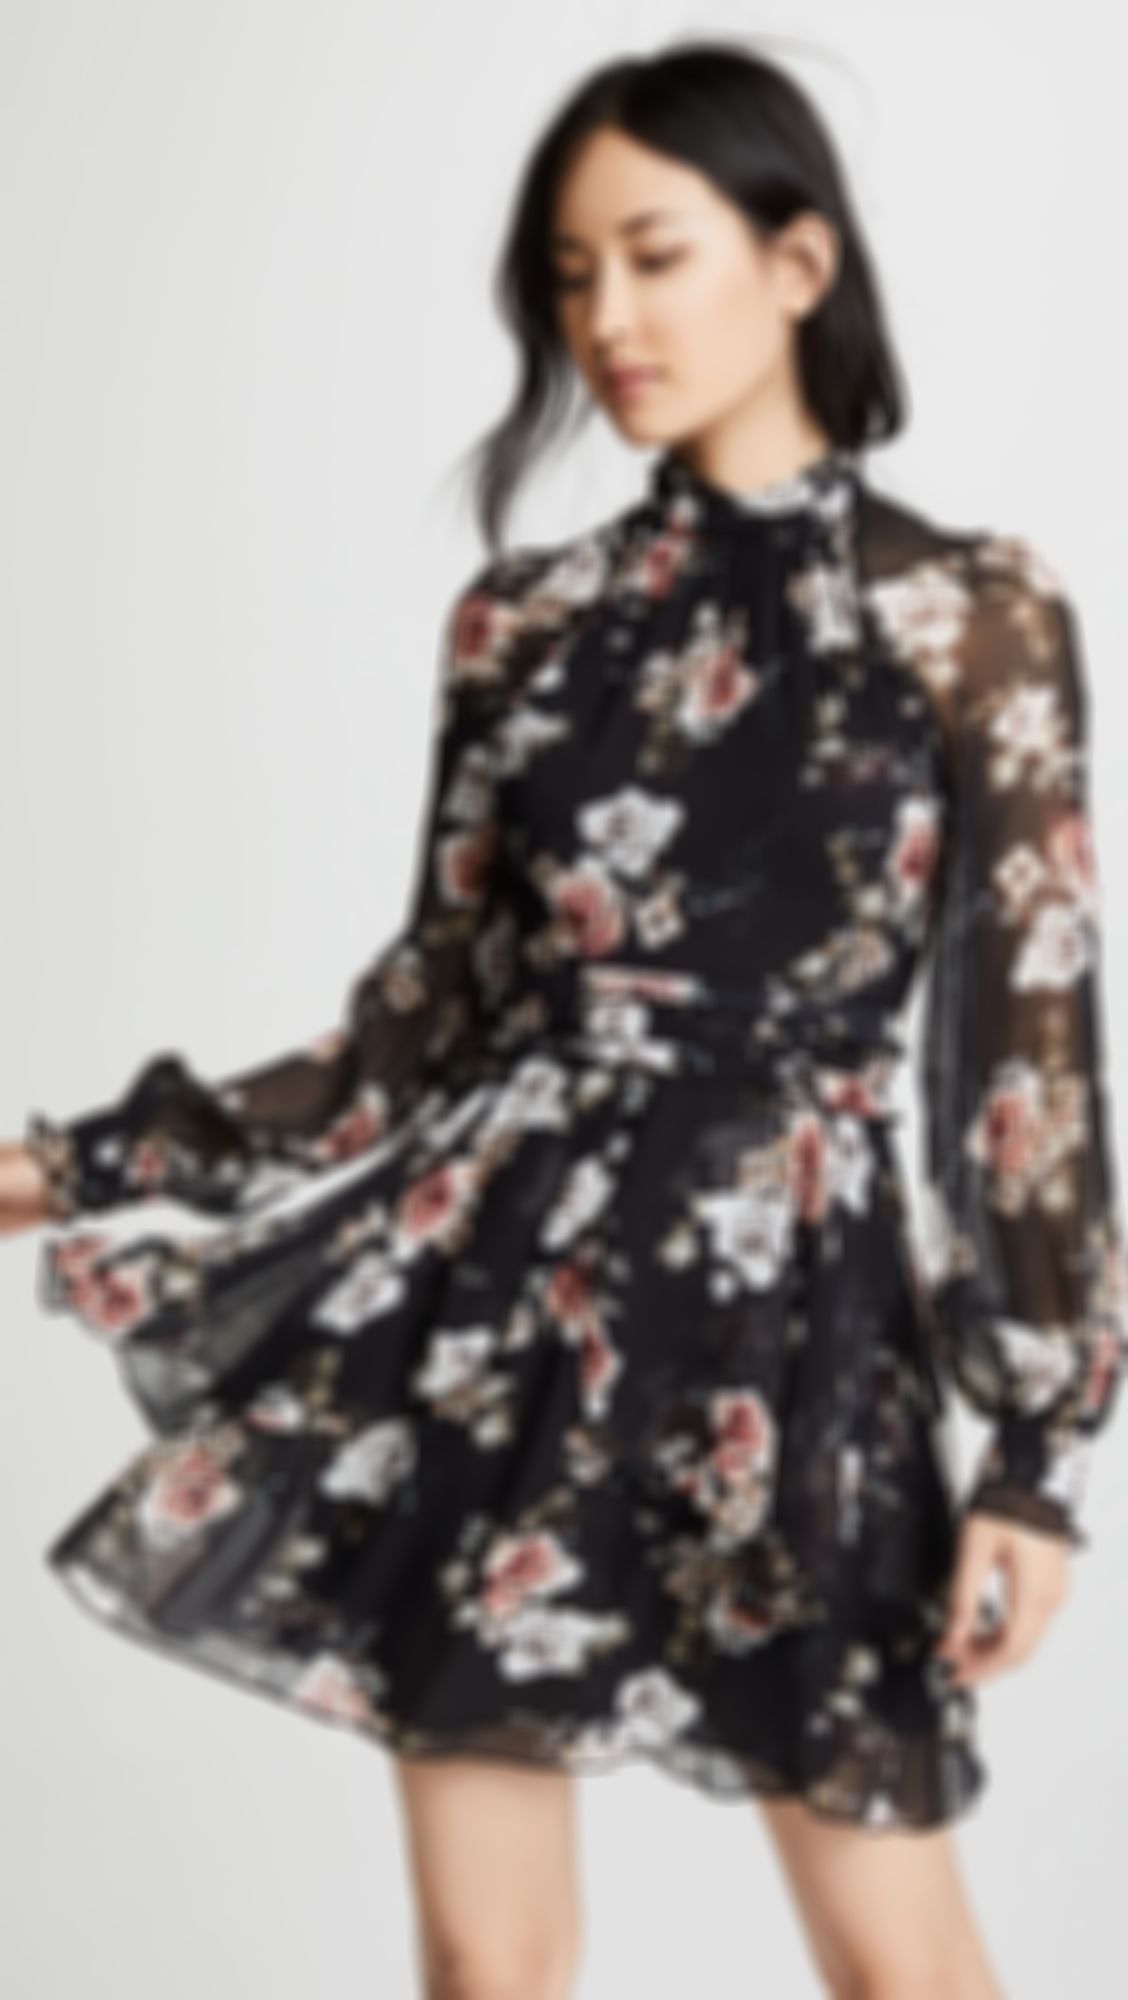 Floral Dresses 2020 Print Dresses Camo Pinafore Dress Short Sleeve Floral Midi Dress Buy Floral Dress 3D Floral Dress